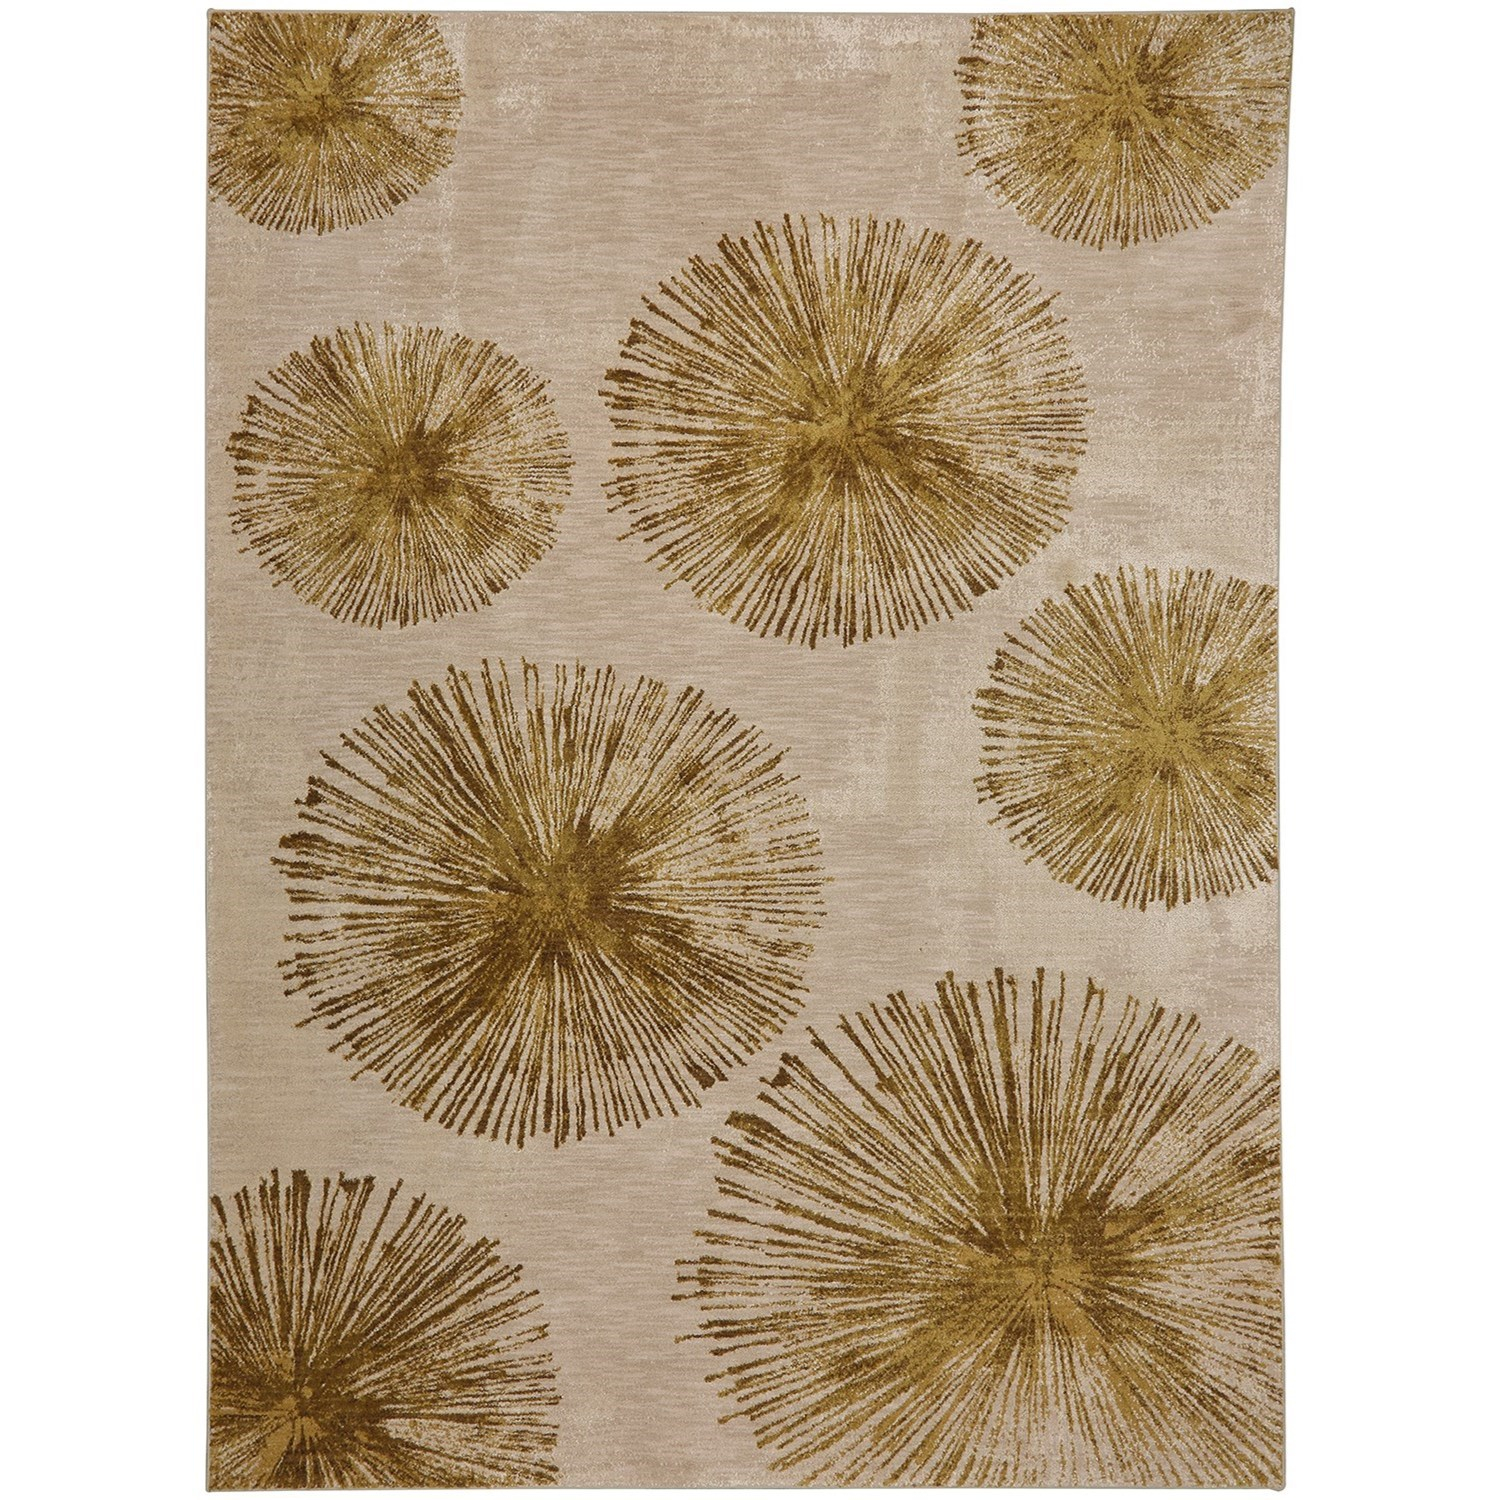 "Cosmopolitan 9' 6""x12' 11"" Rectangle Geometric Area Rug by Karastan Rugs at Darvin Furniture"